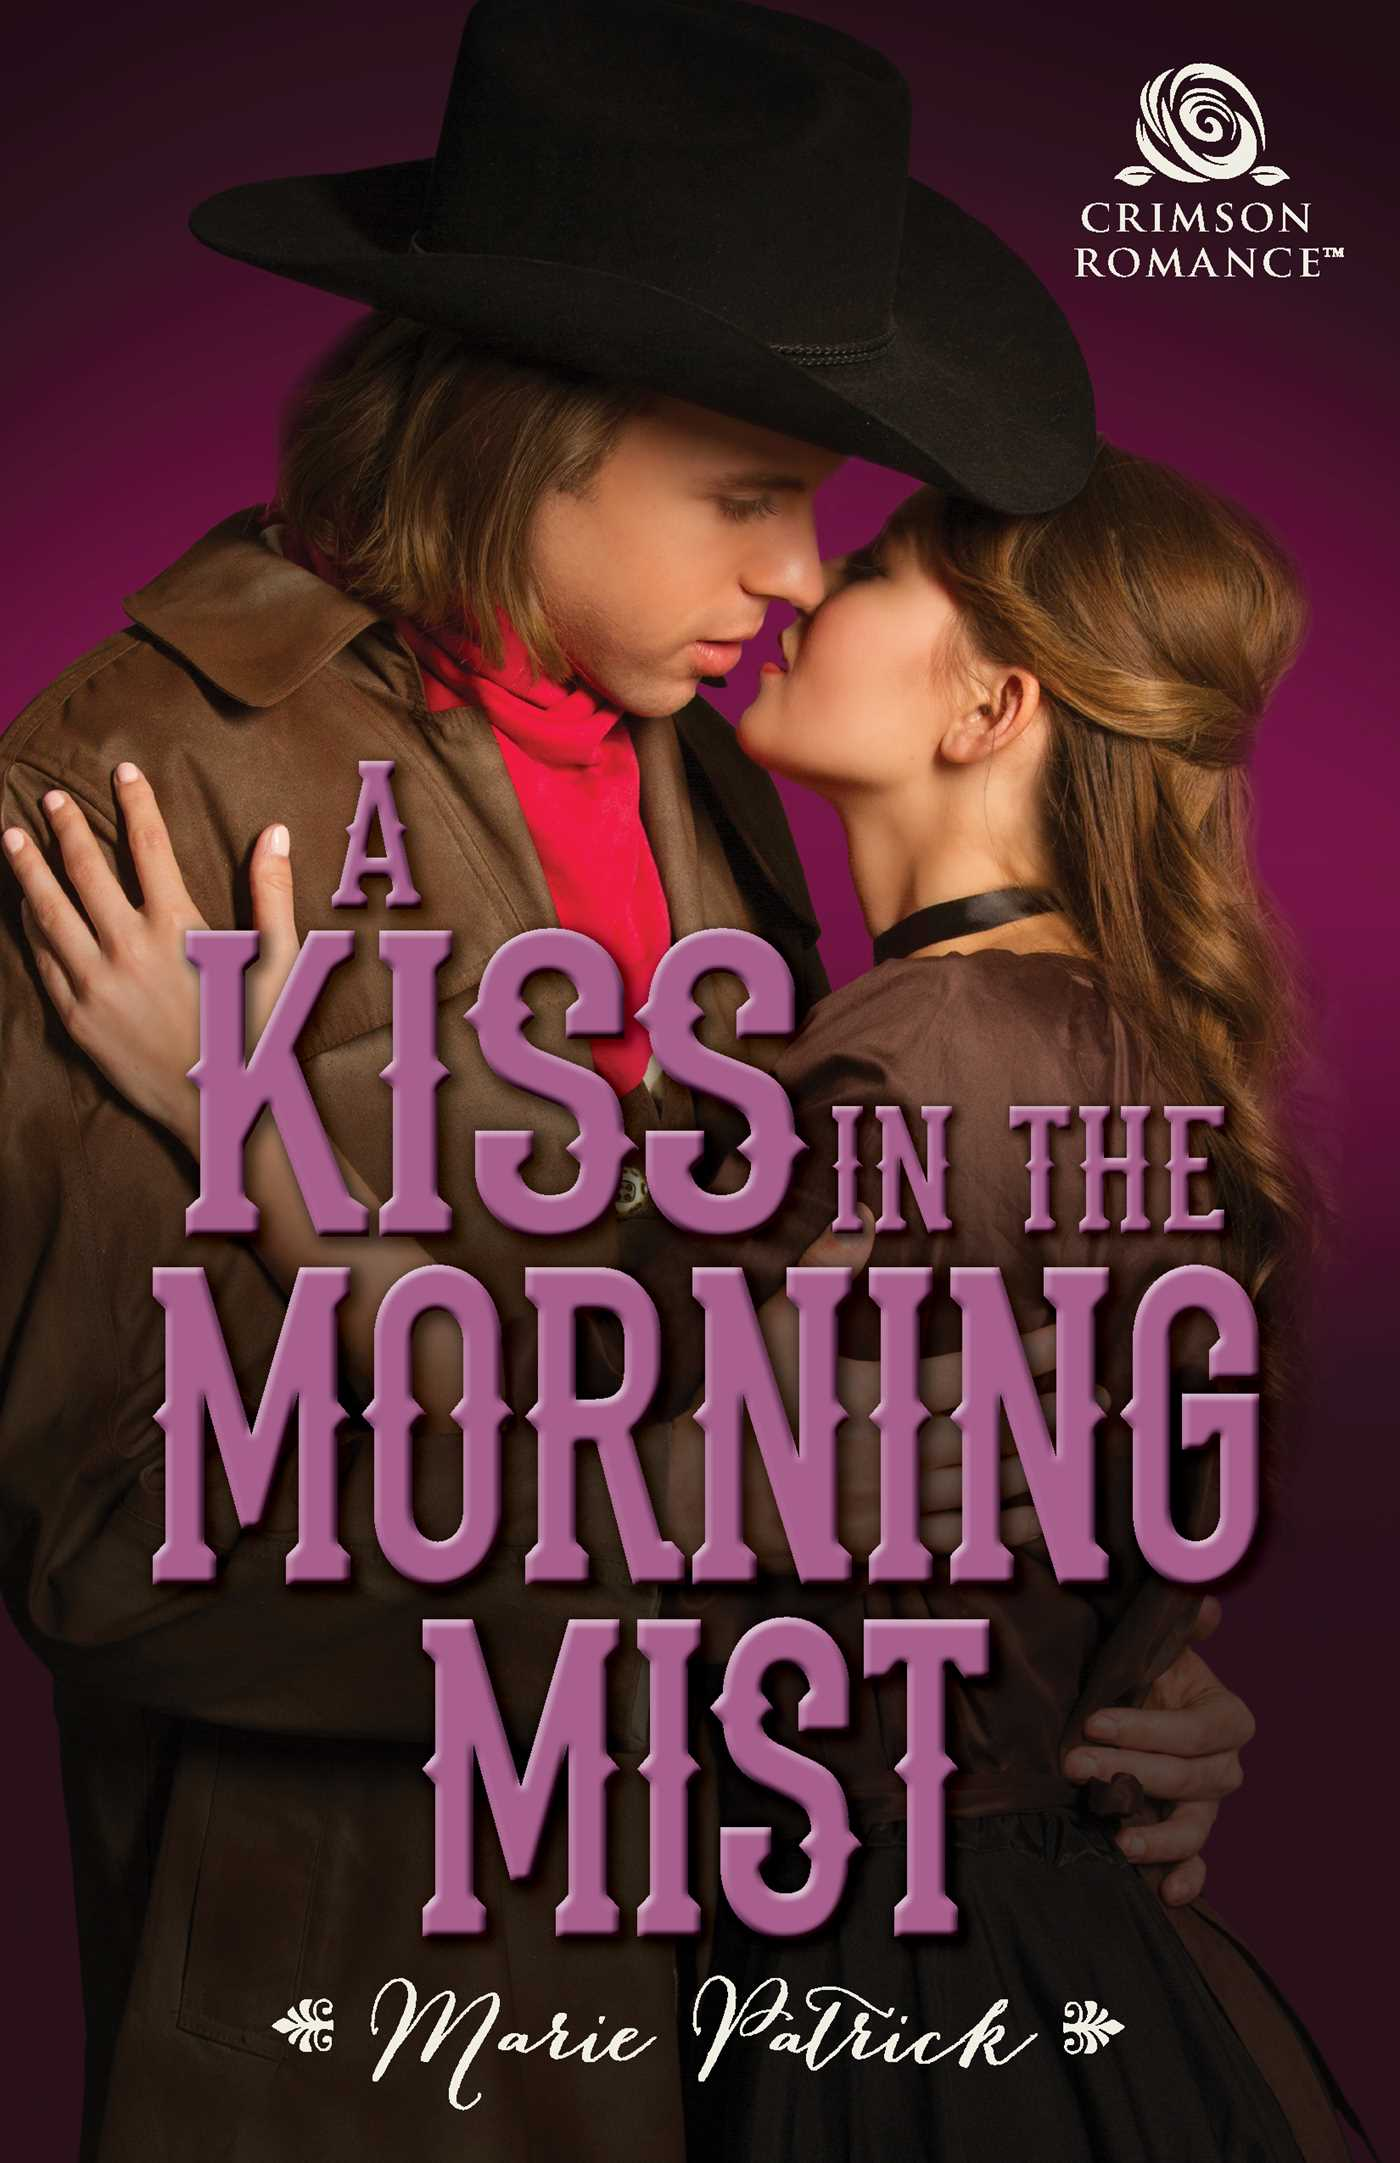 A kiss in the morning mist 9781507204443 hr